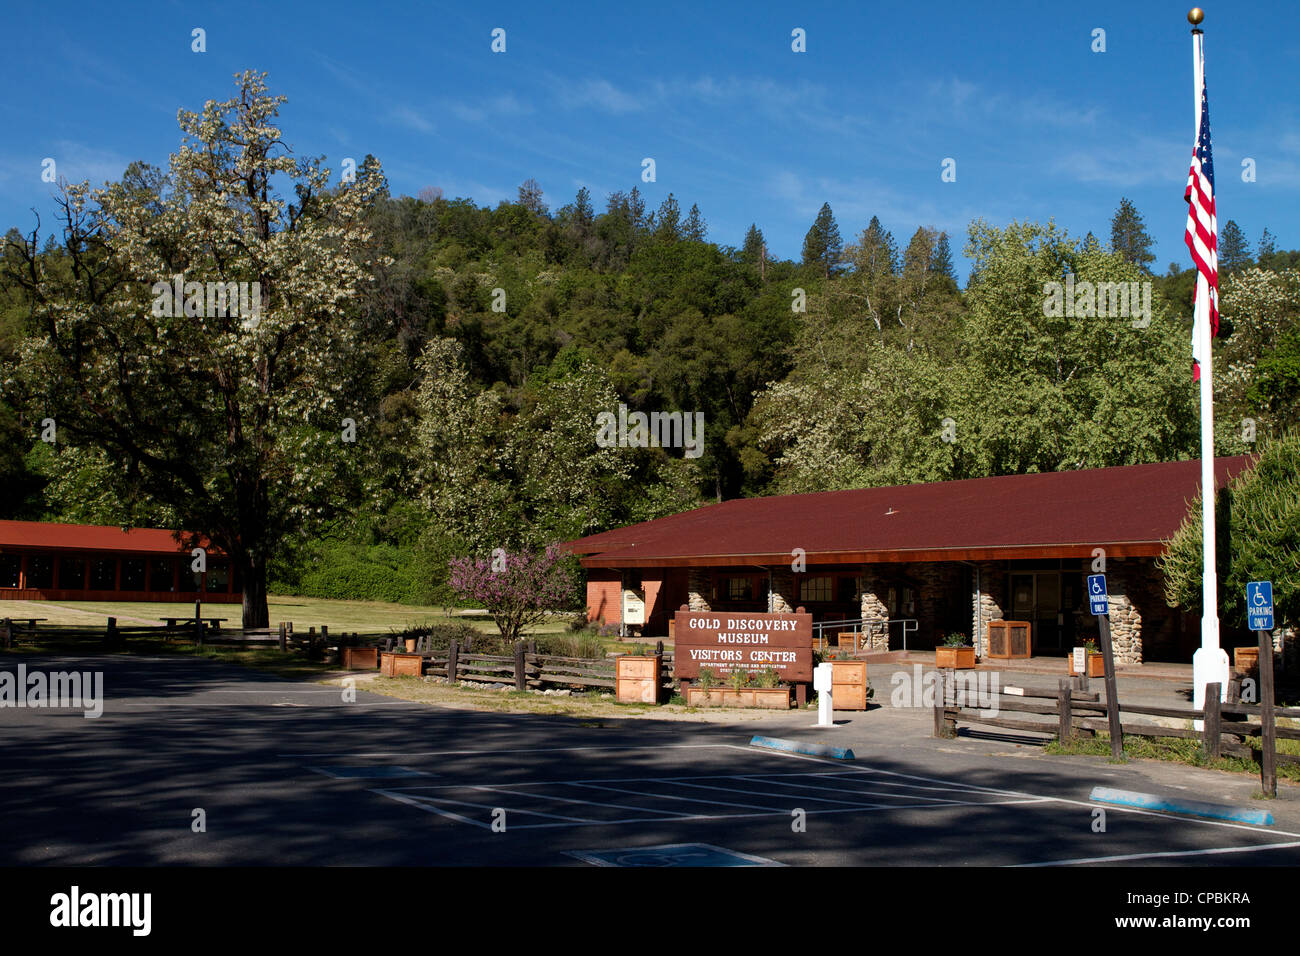 James Marshall gold discovery museum and visitor center  Coloma California - Stock Image